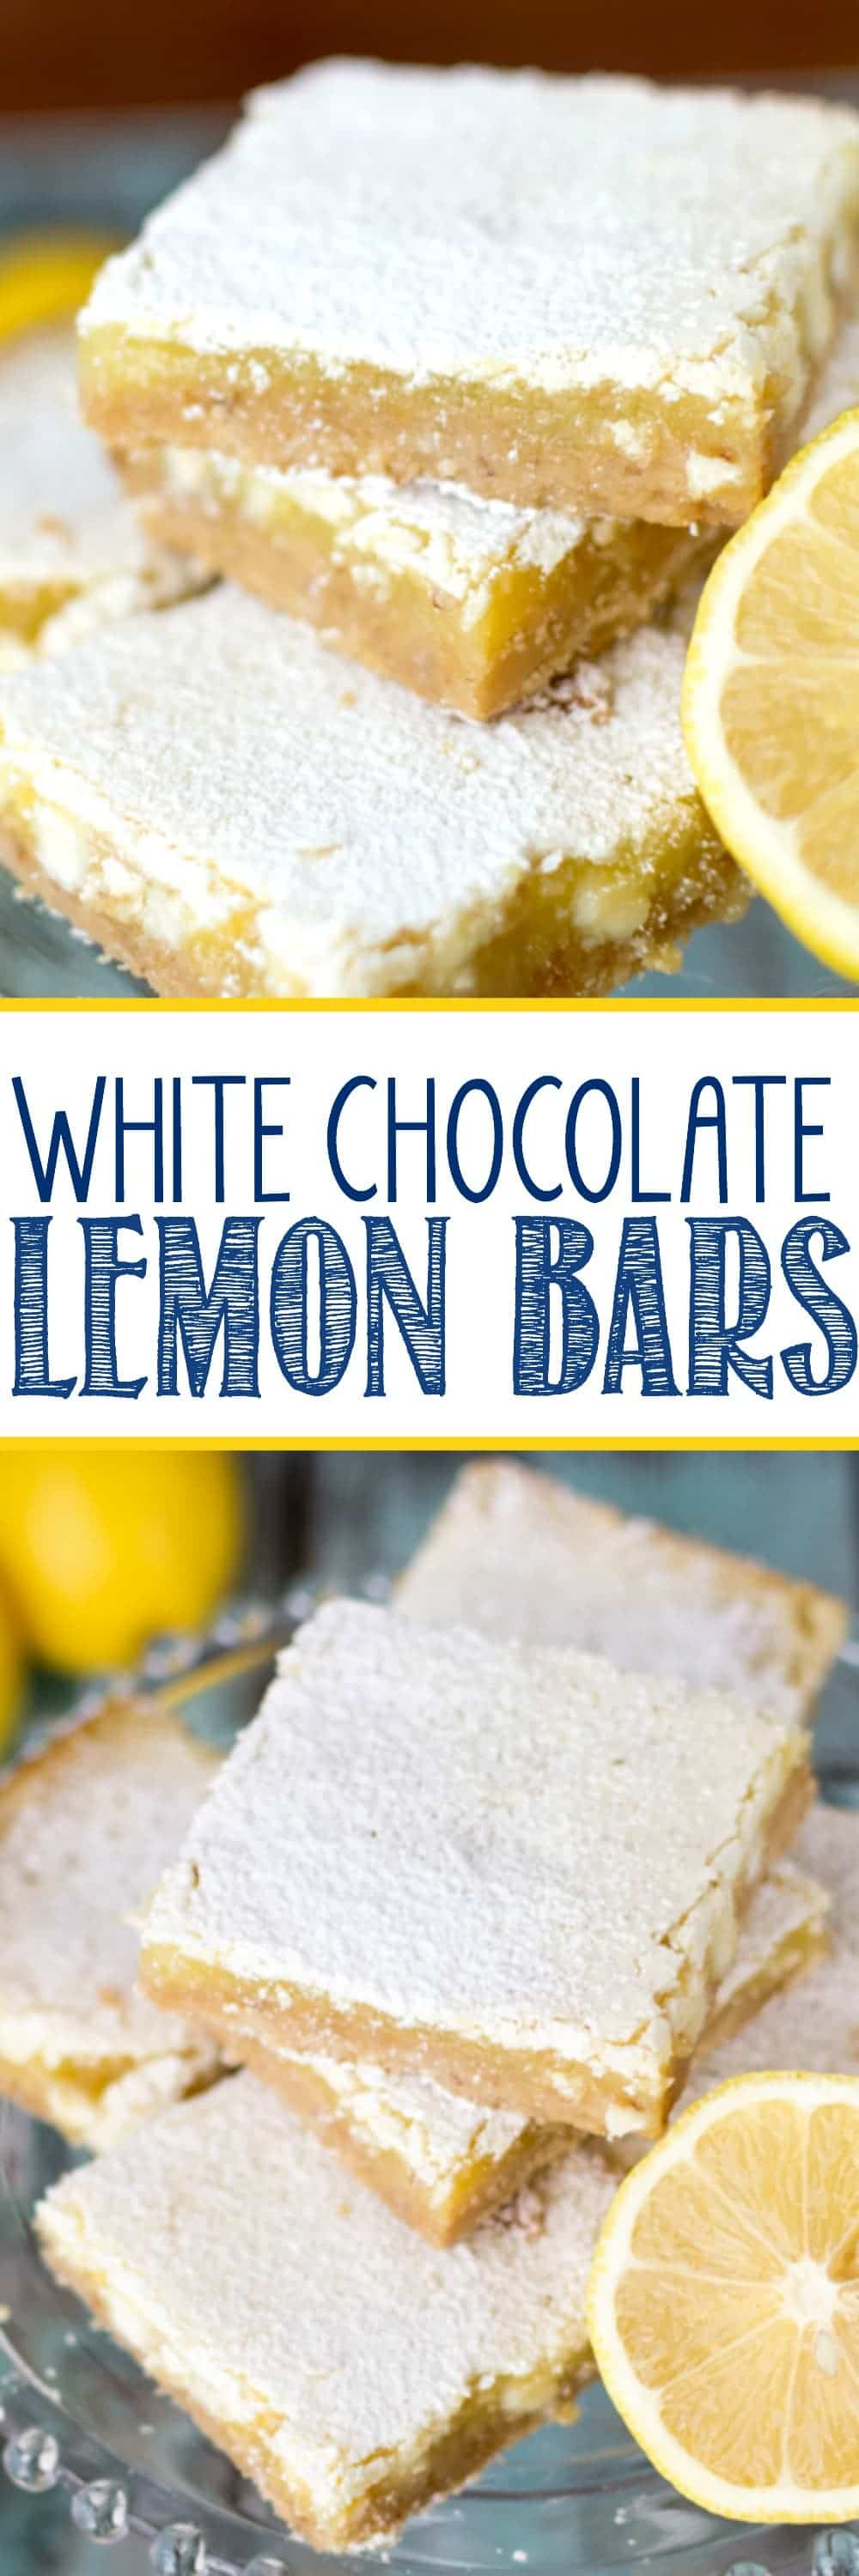 White Chocolate Lemon Bars - an easy from scratch lemon bar recipe! Shortbread crust topped with gooey lemon filling and white chocolate chips - everyone LOVES these bars!